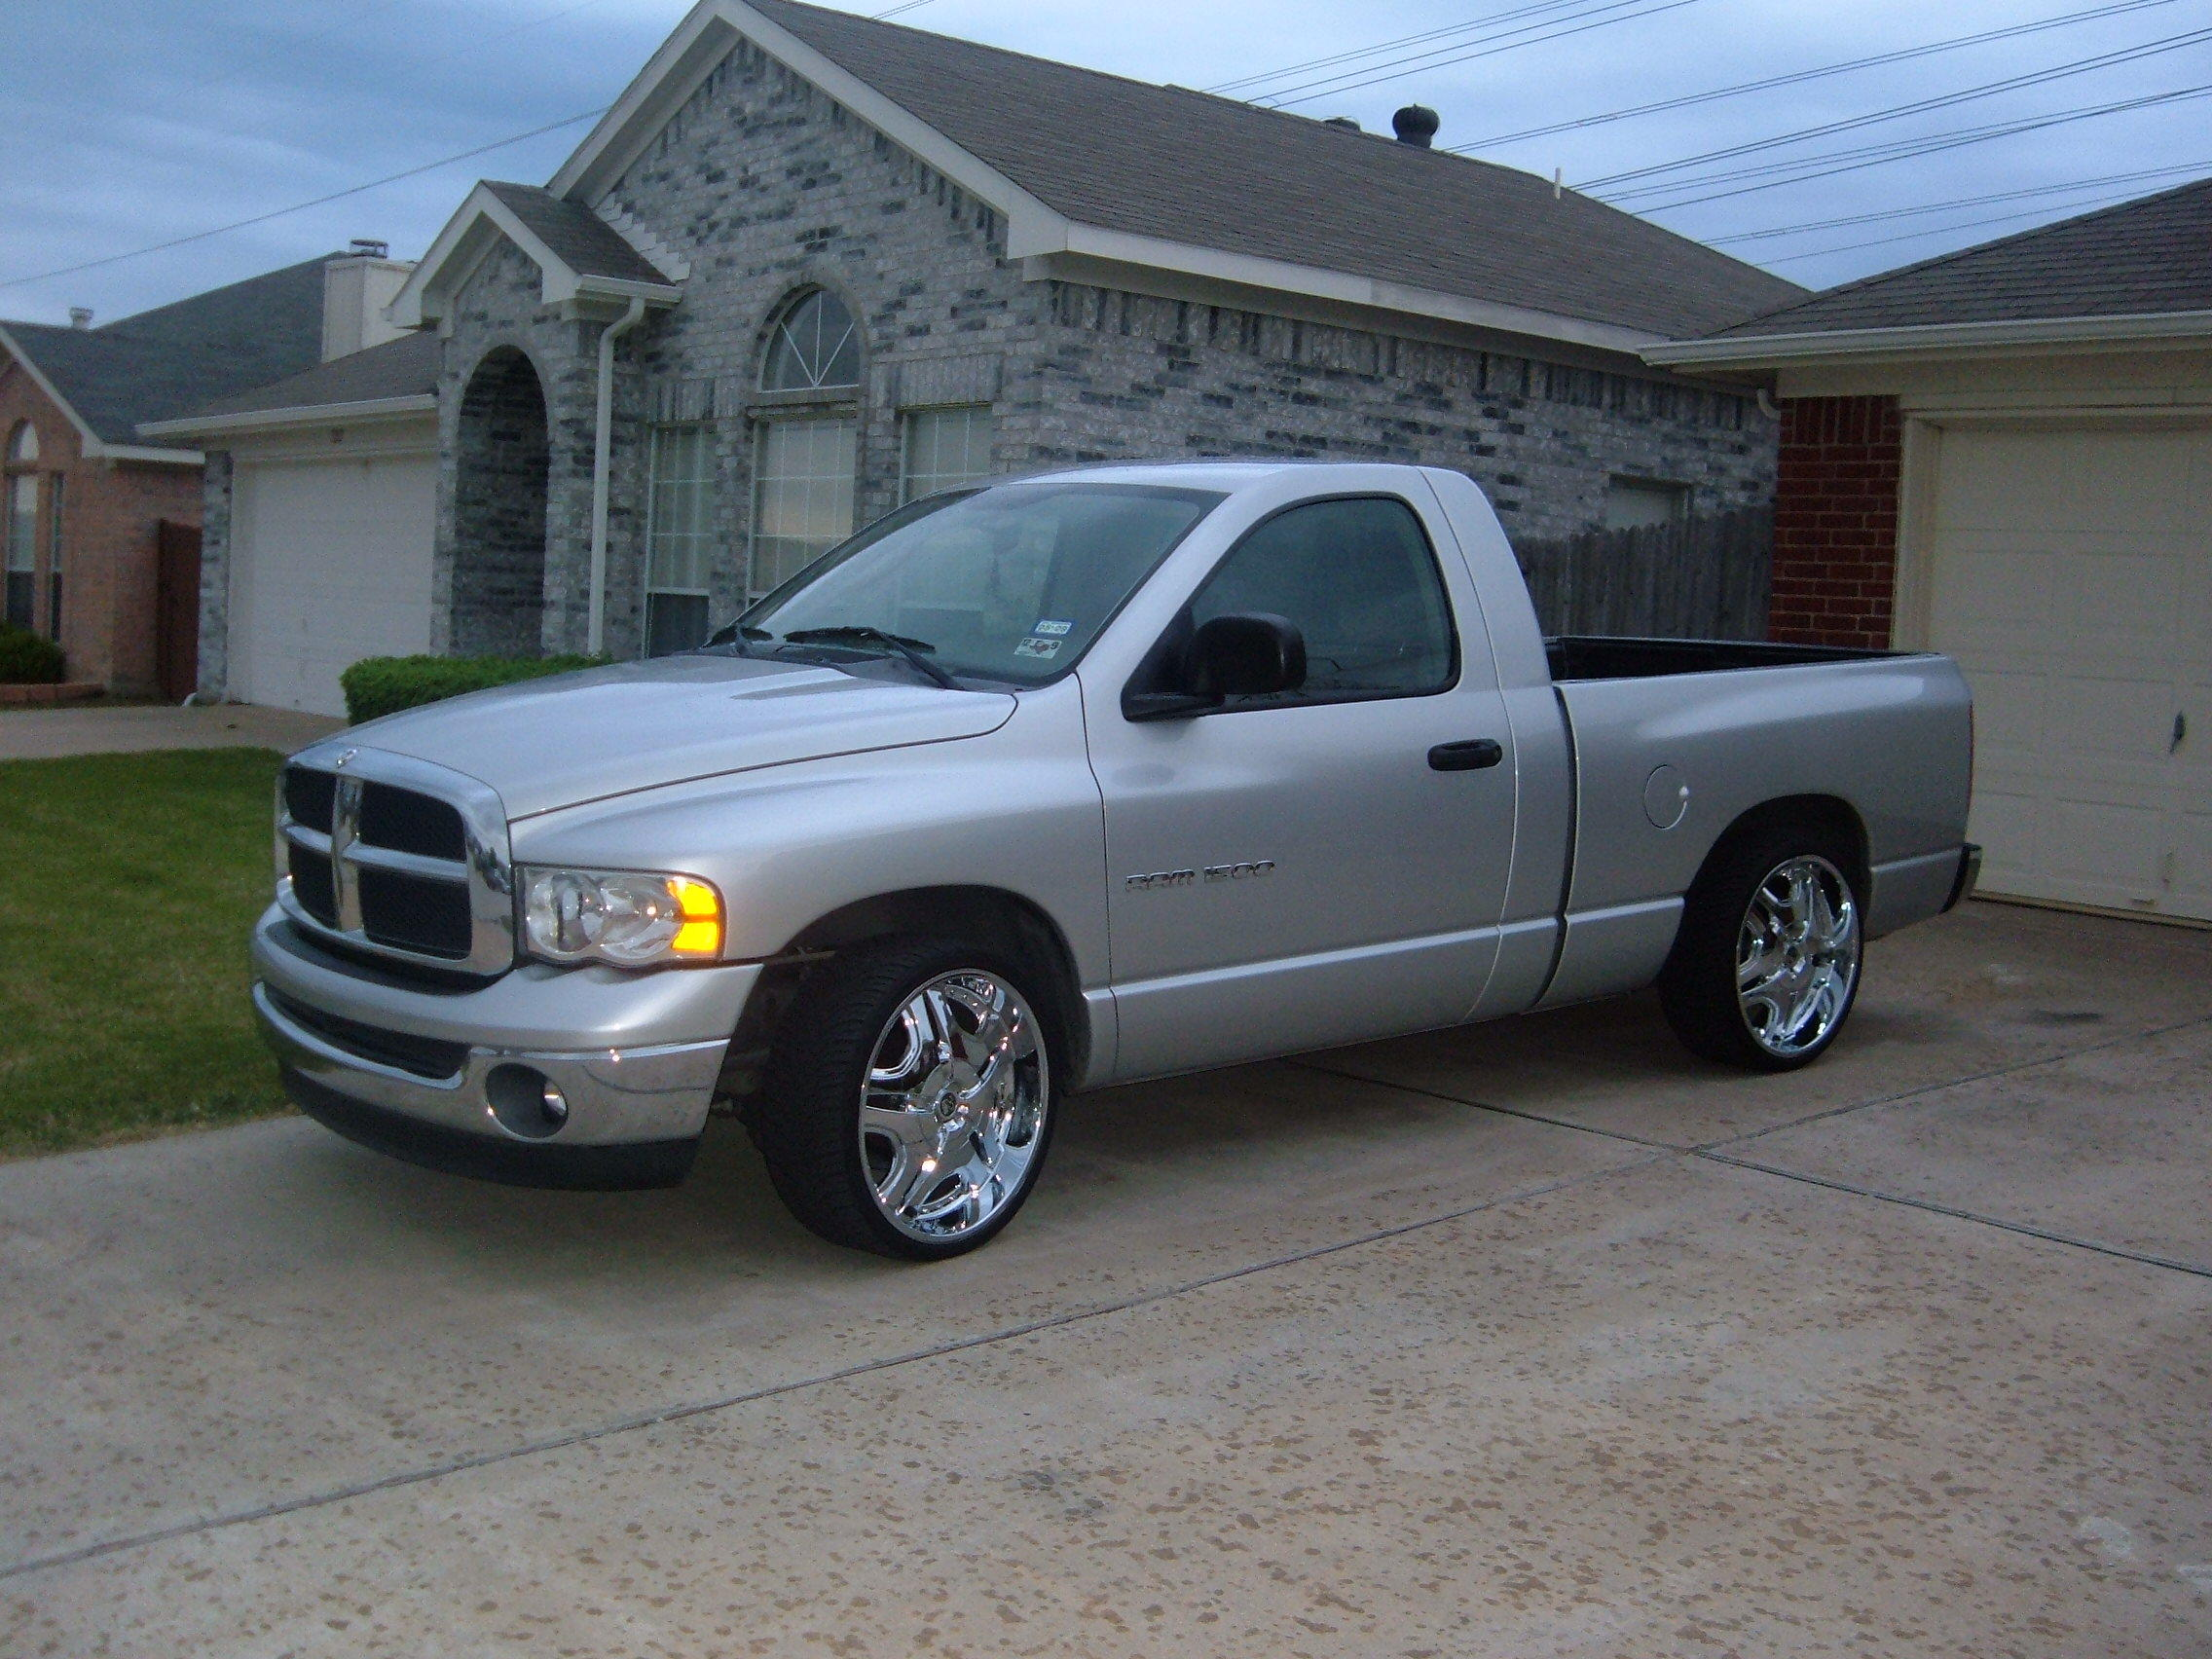 sebring 1 2003 dodge ram 1500 regular cab specs photos modification info at cardomain. Black Bedroom Furniture Sets. Home Design Ideas